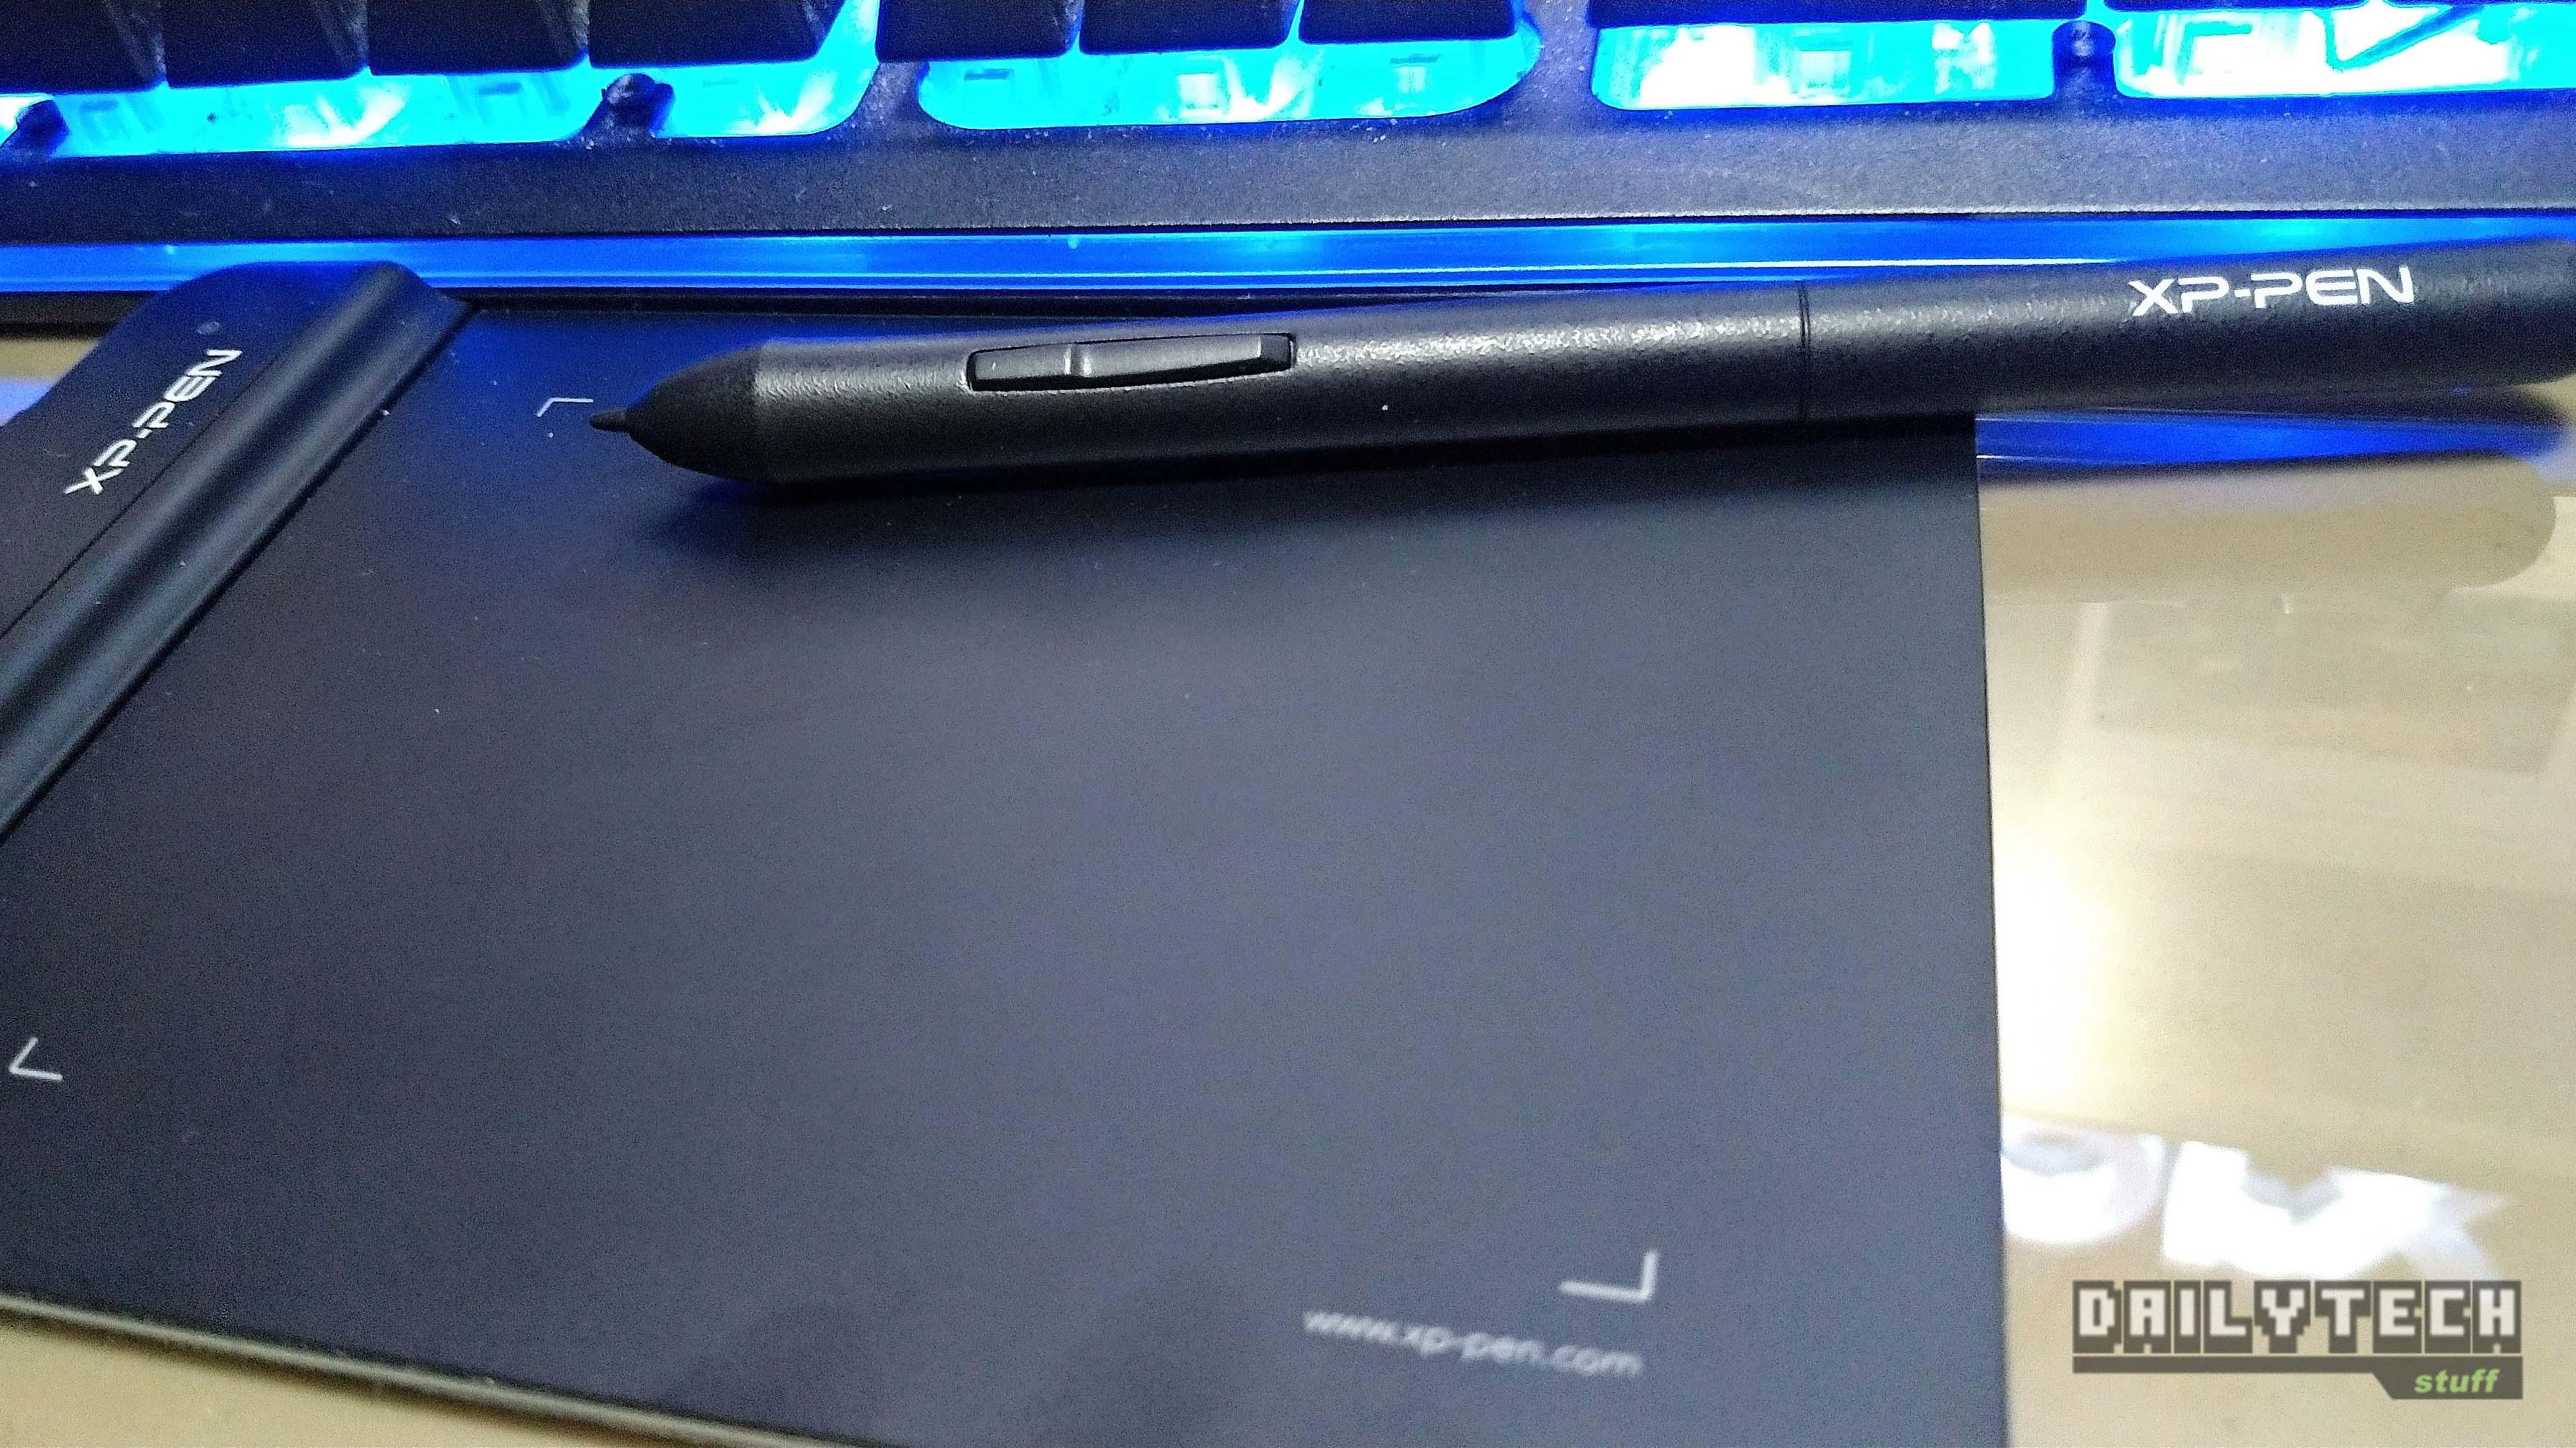 XP-PEN G430S Graphic Tablet